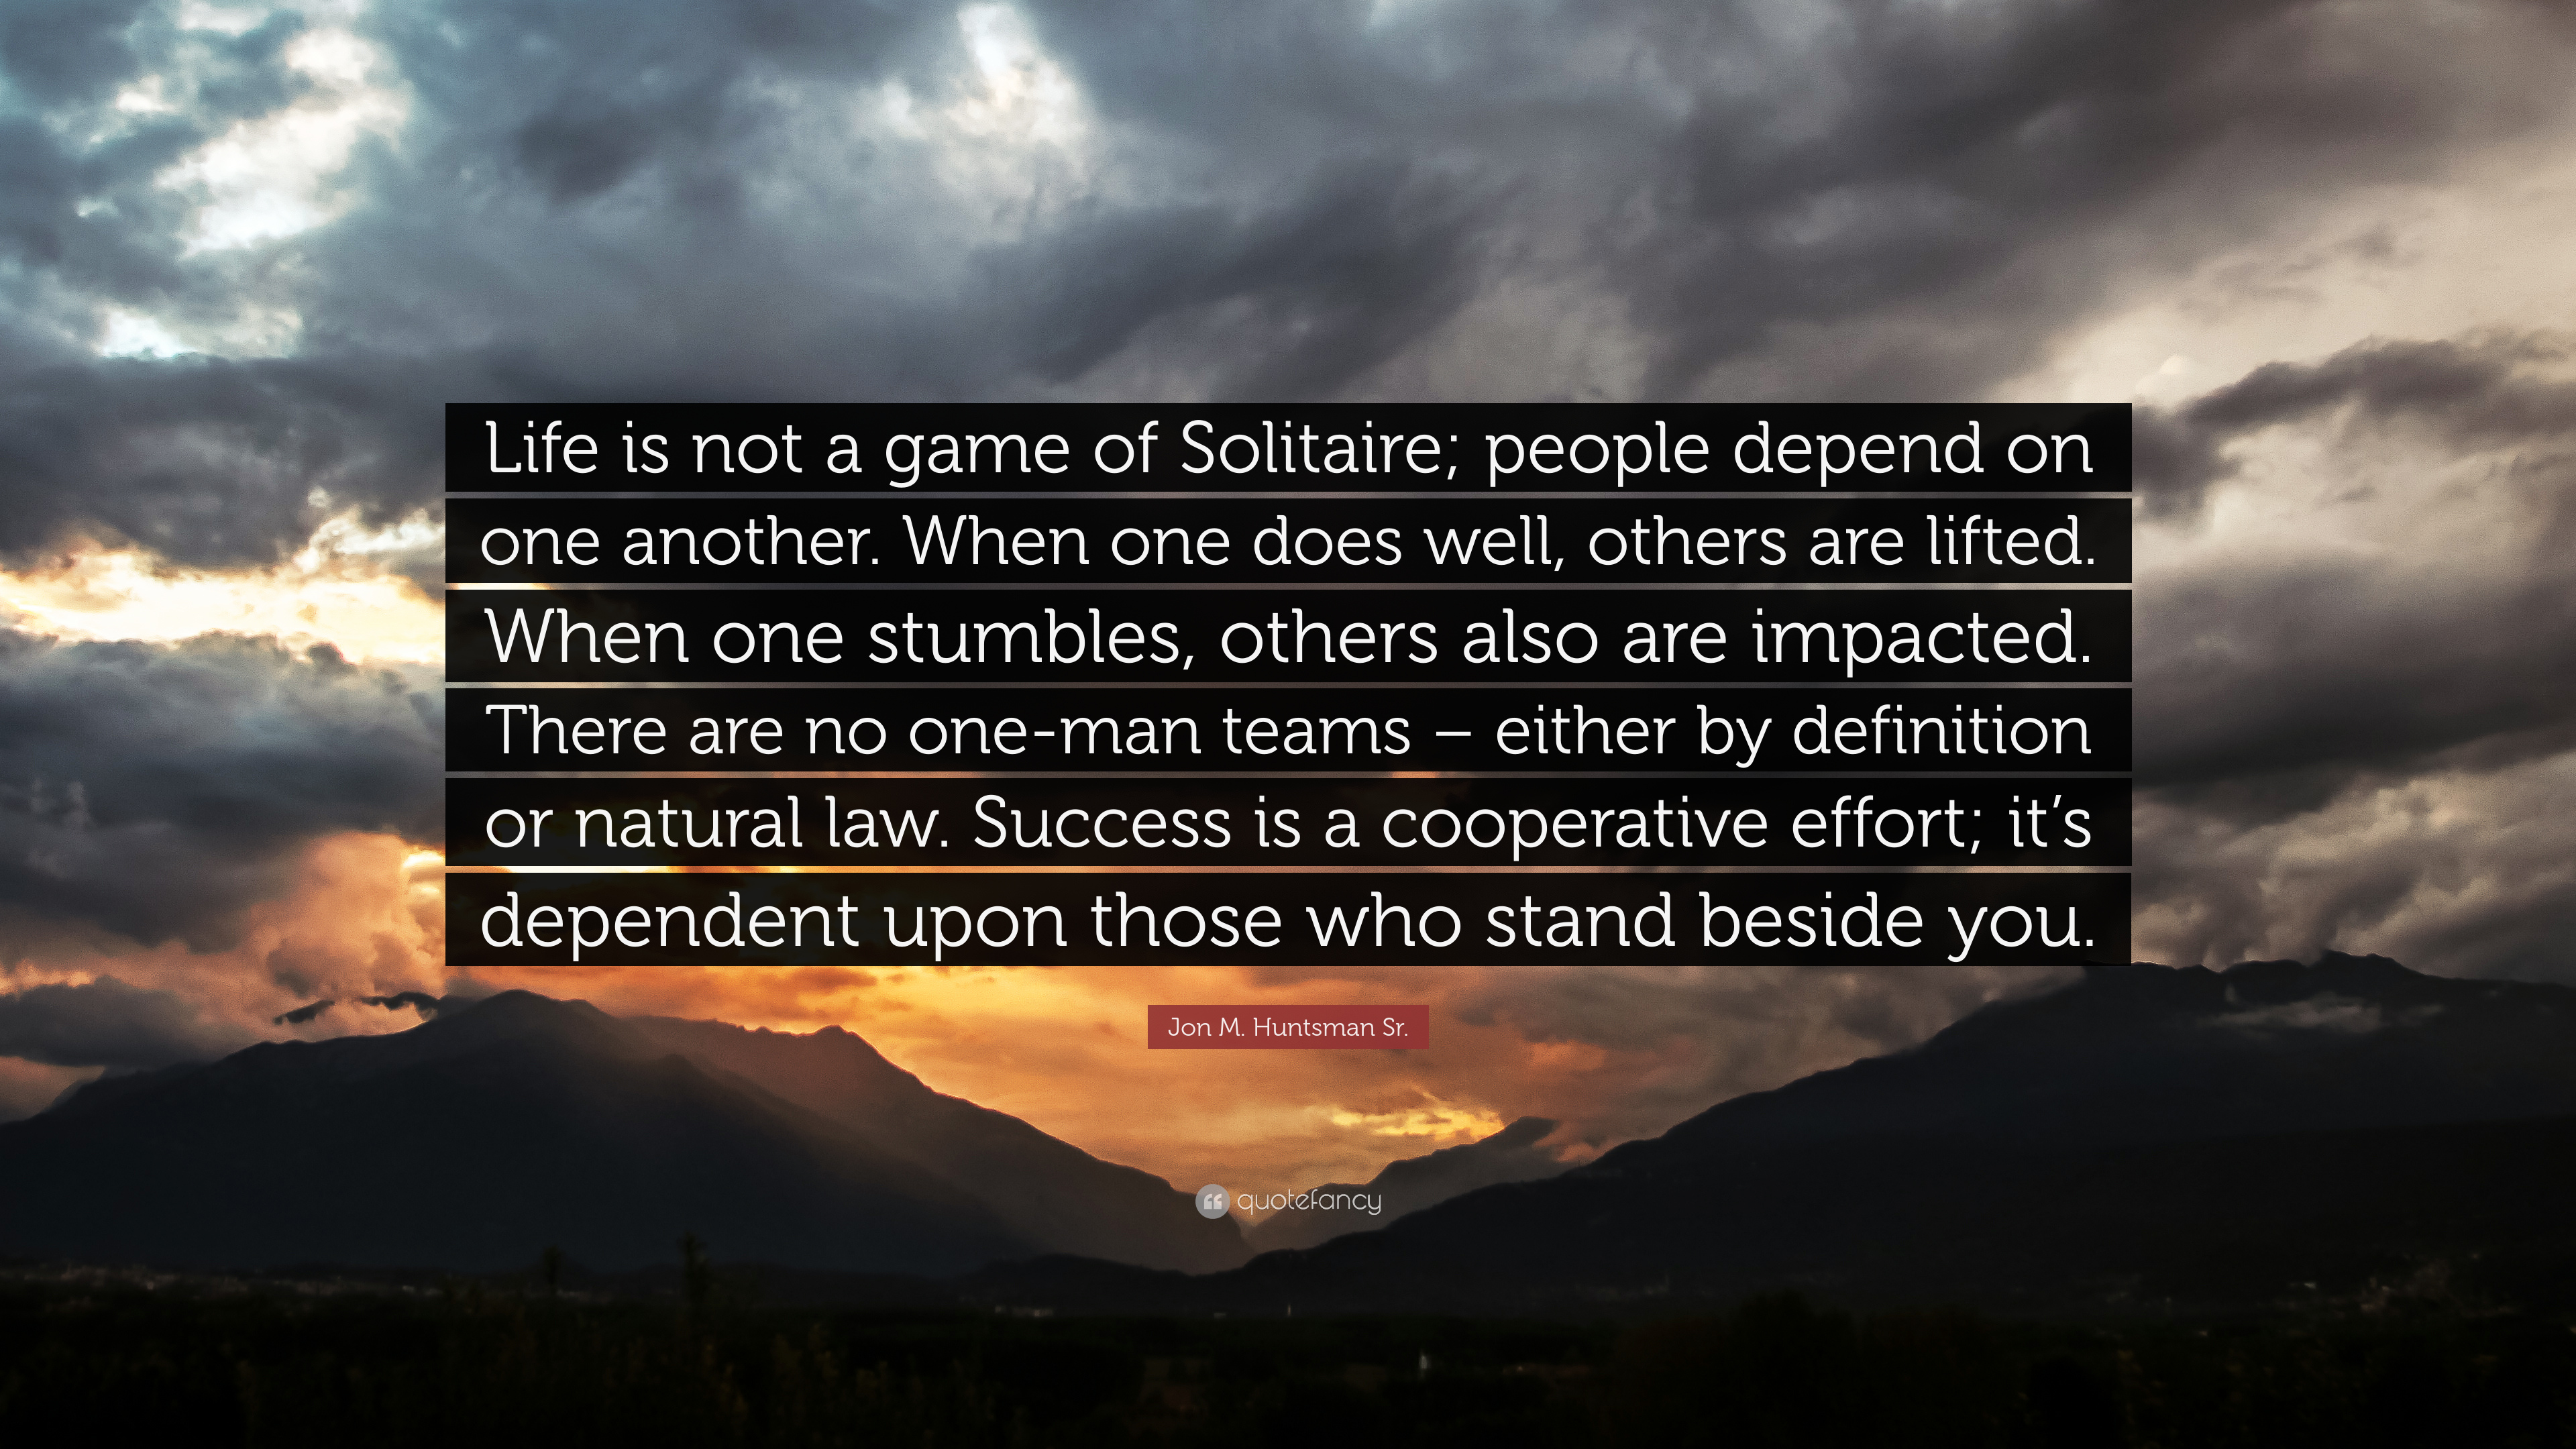 Jon M Huntsman Sr Quote Life Is Not A Game Of Solitaire People